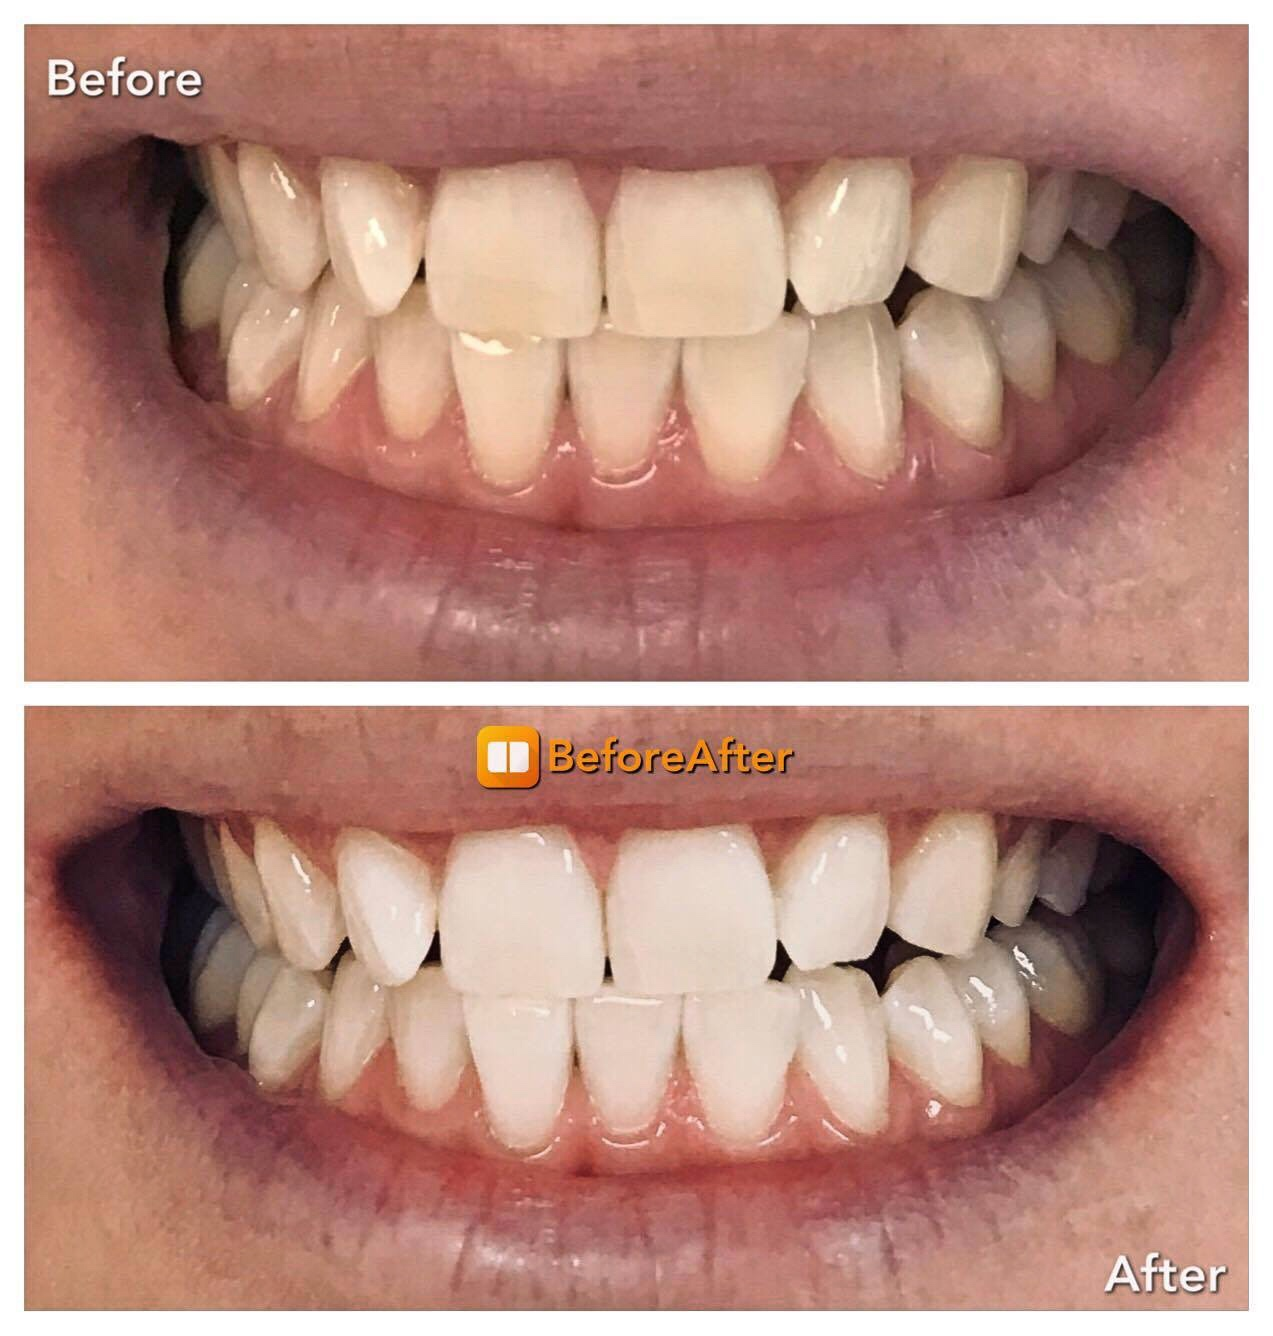 Teeth Whitening / Teeth cleaning with B24